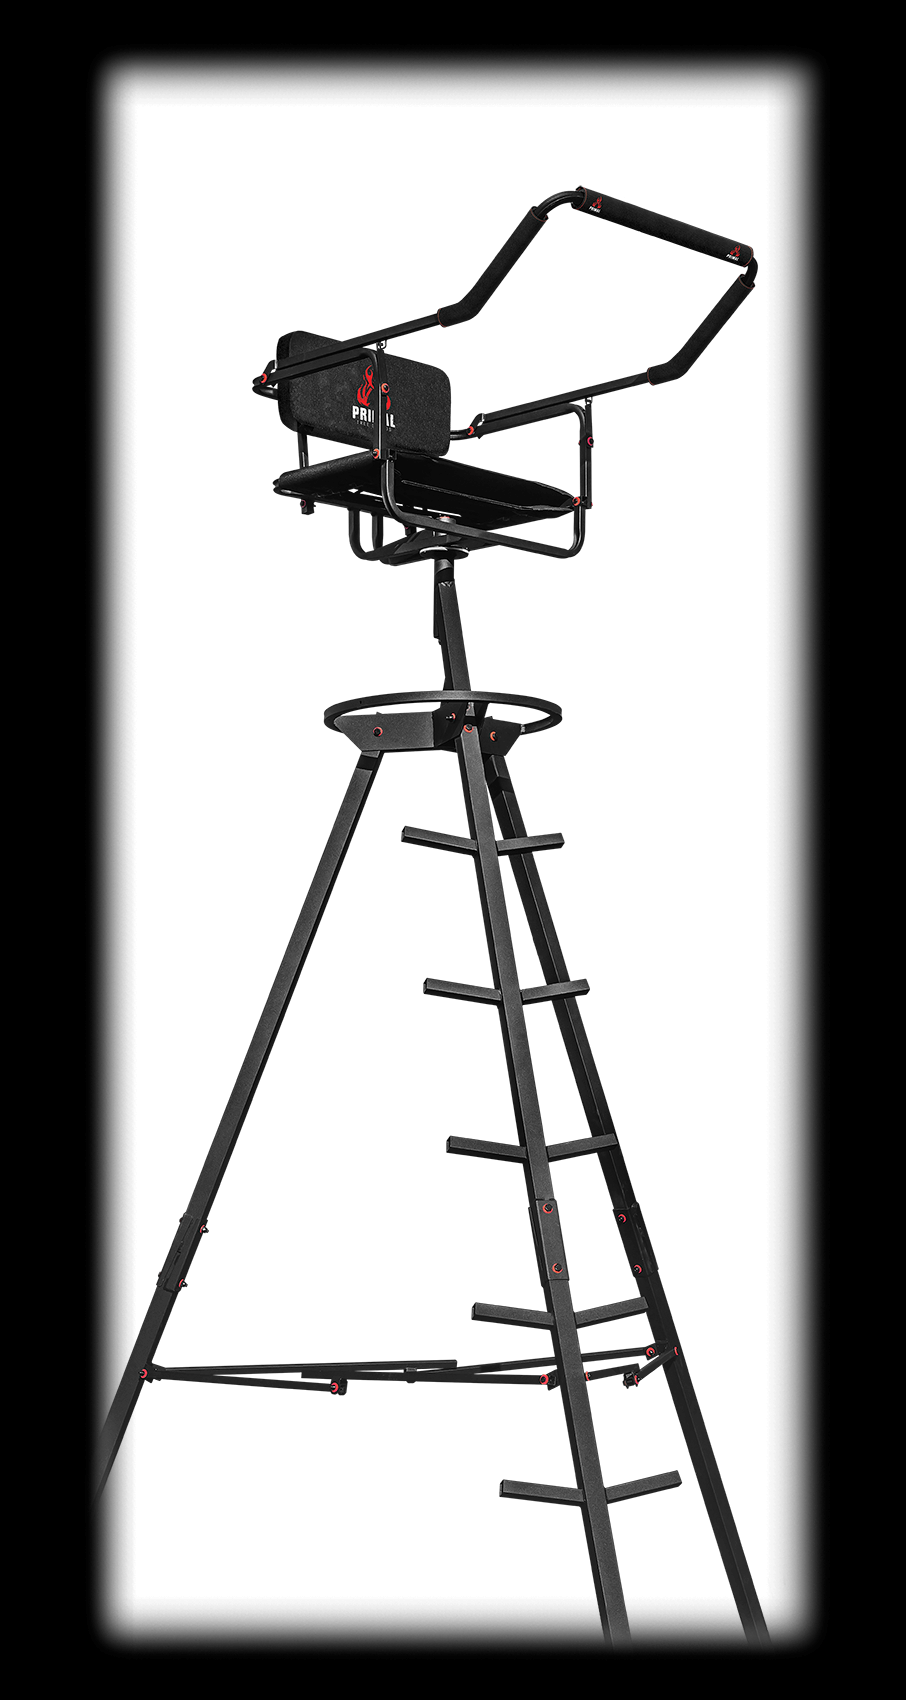 MODEL #PVTS-10P THE FLY POD - 10' PORTABLE TRIPOD